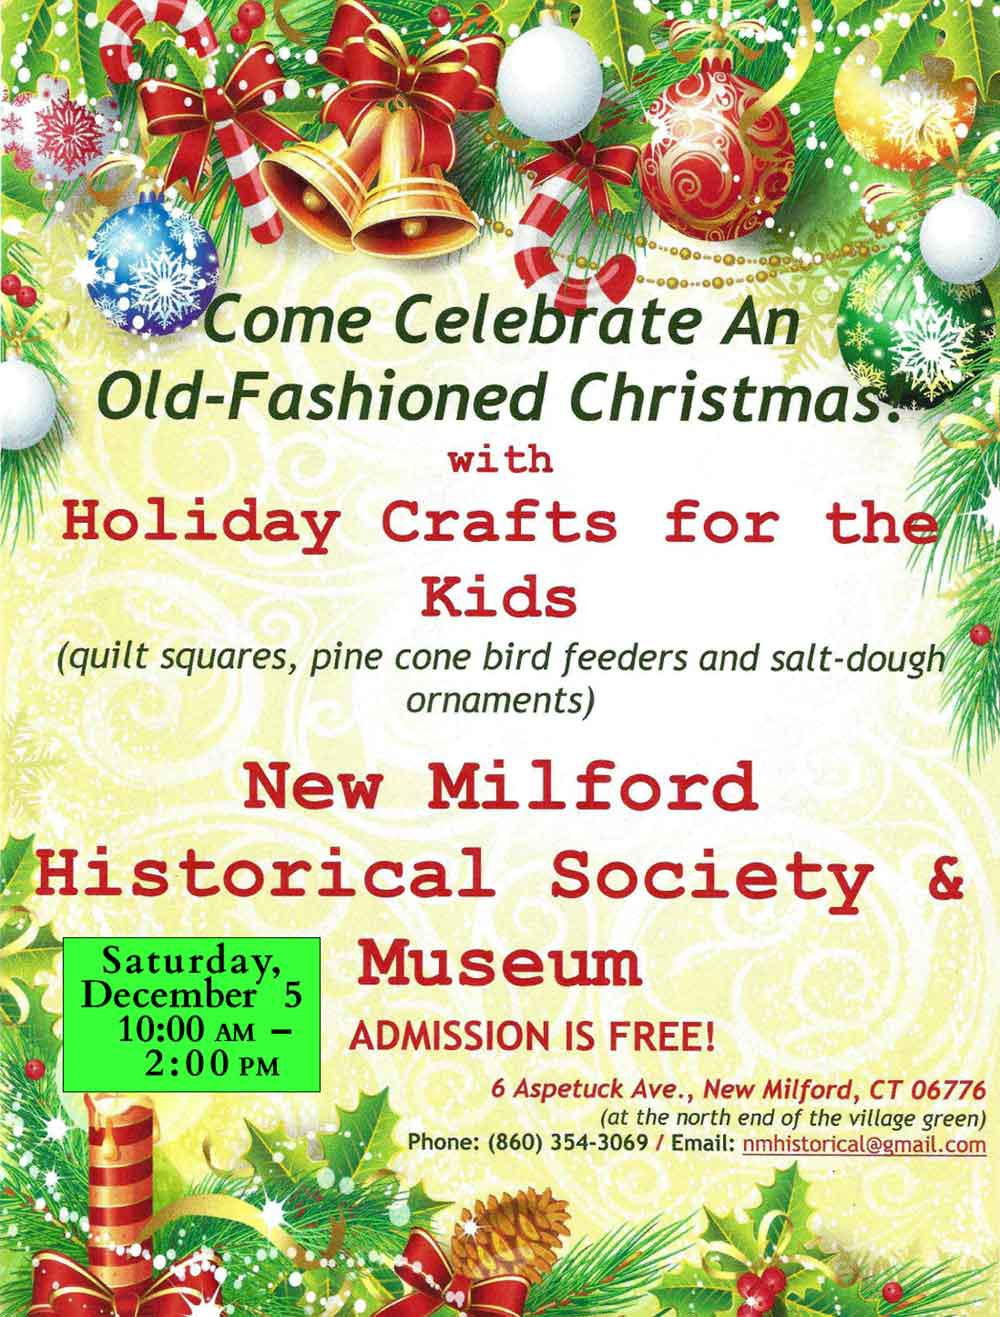 Saturday, December 5th   (10:00 AM to 2:00 PM)   Old-Fashioned Christmas Crafts,  Card-Making and Decorations